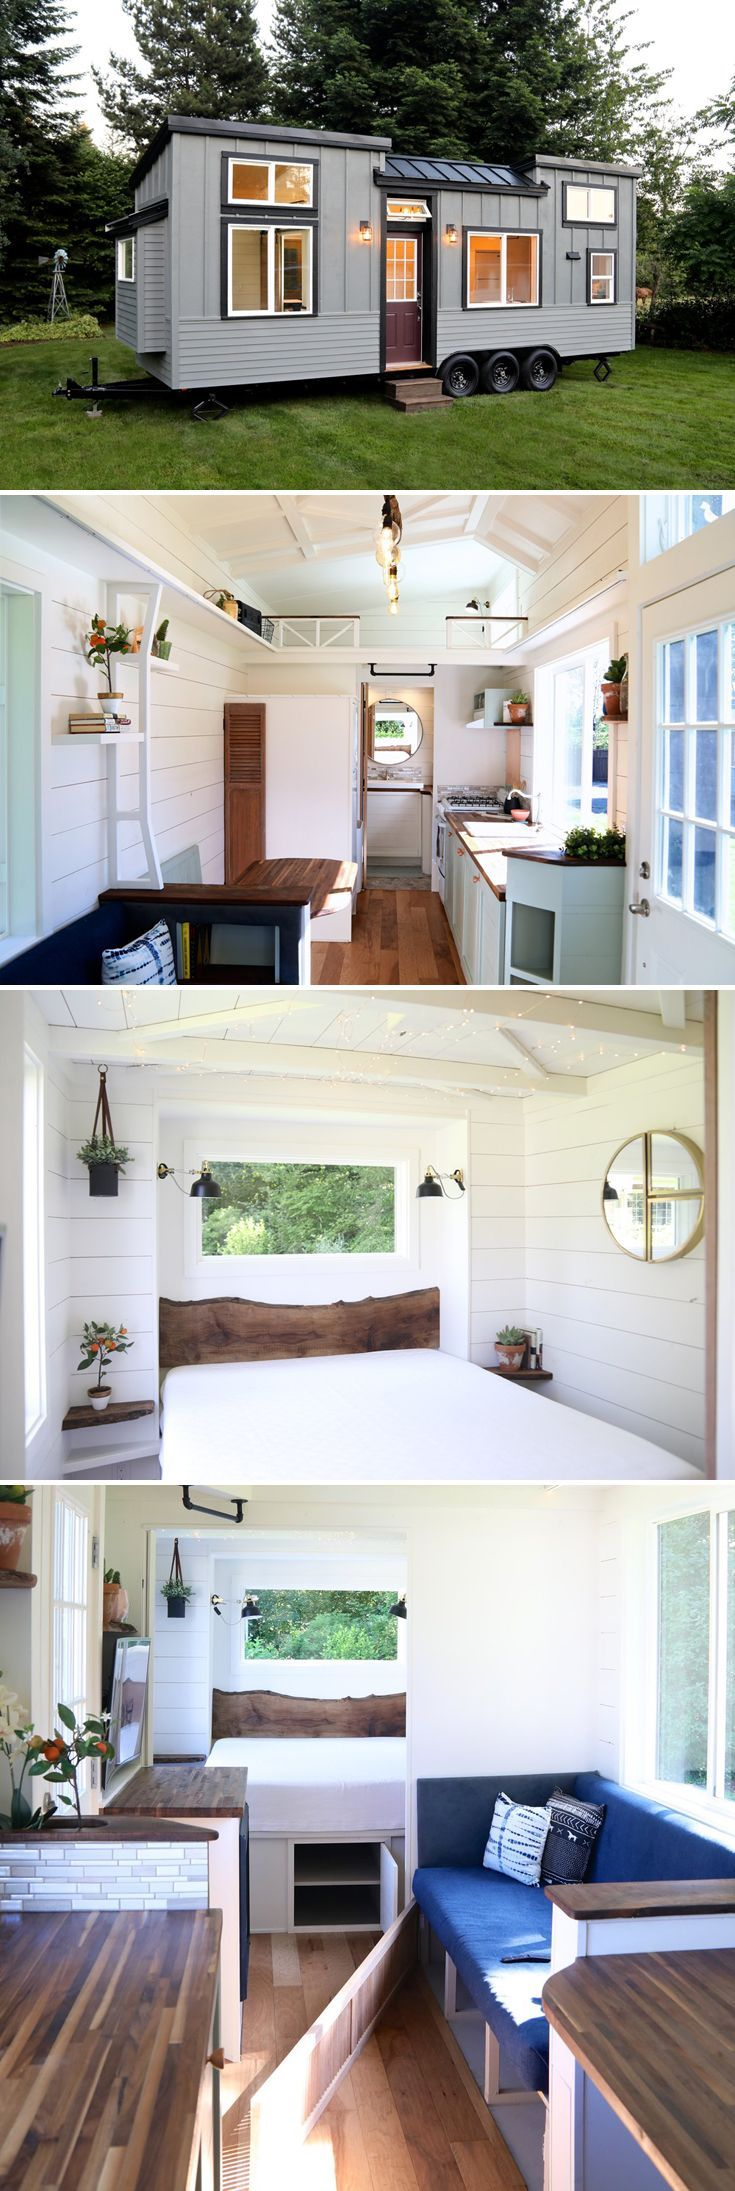 960 best My dream rooms/house images on Pinterest | Country homes ...